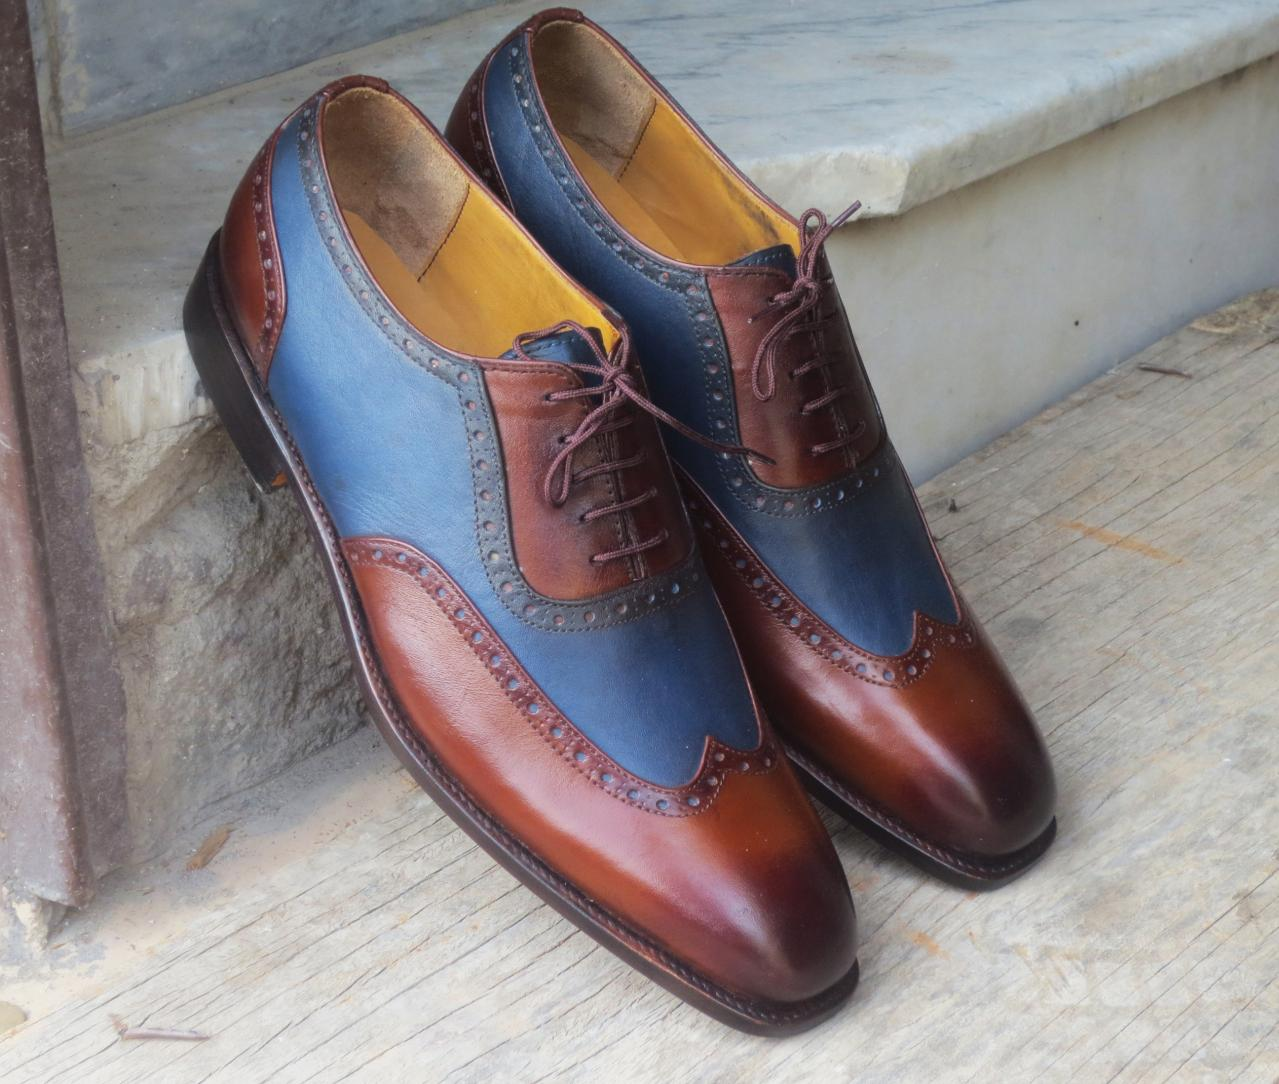 Handmade Men's Wing Tip Shoes, Brown Blue Leather Wing Tip Lace Up Formal Shoes.